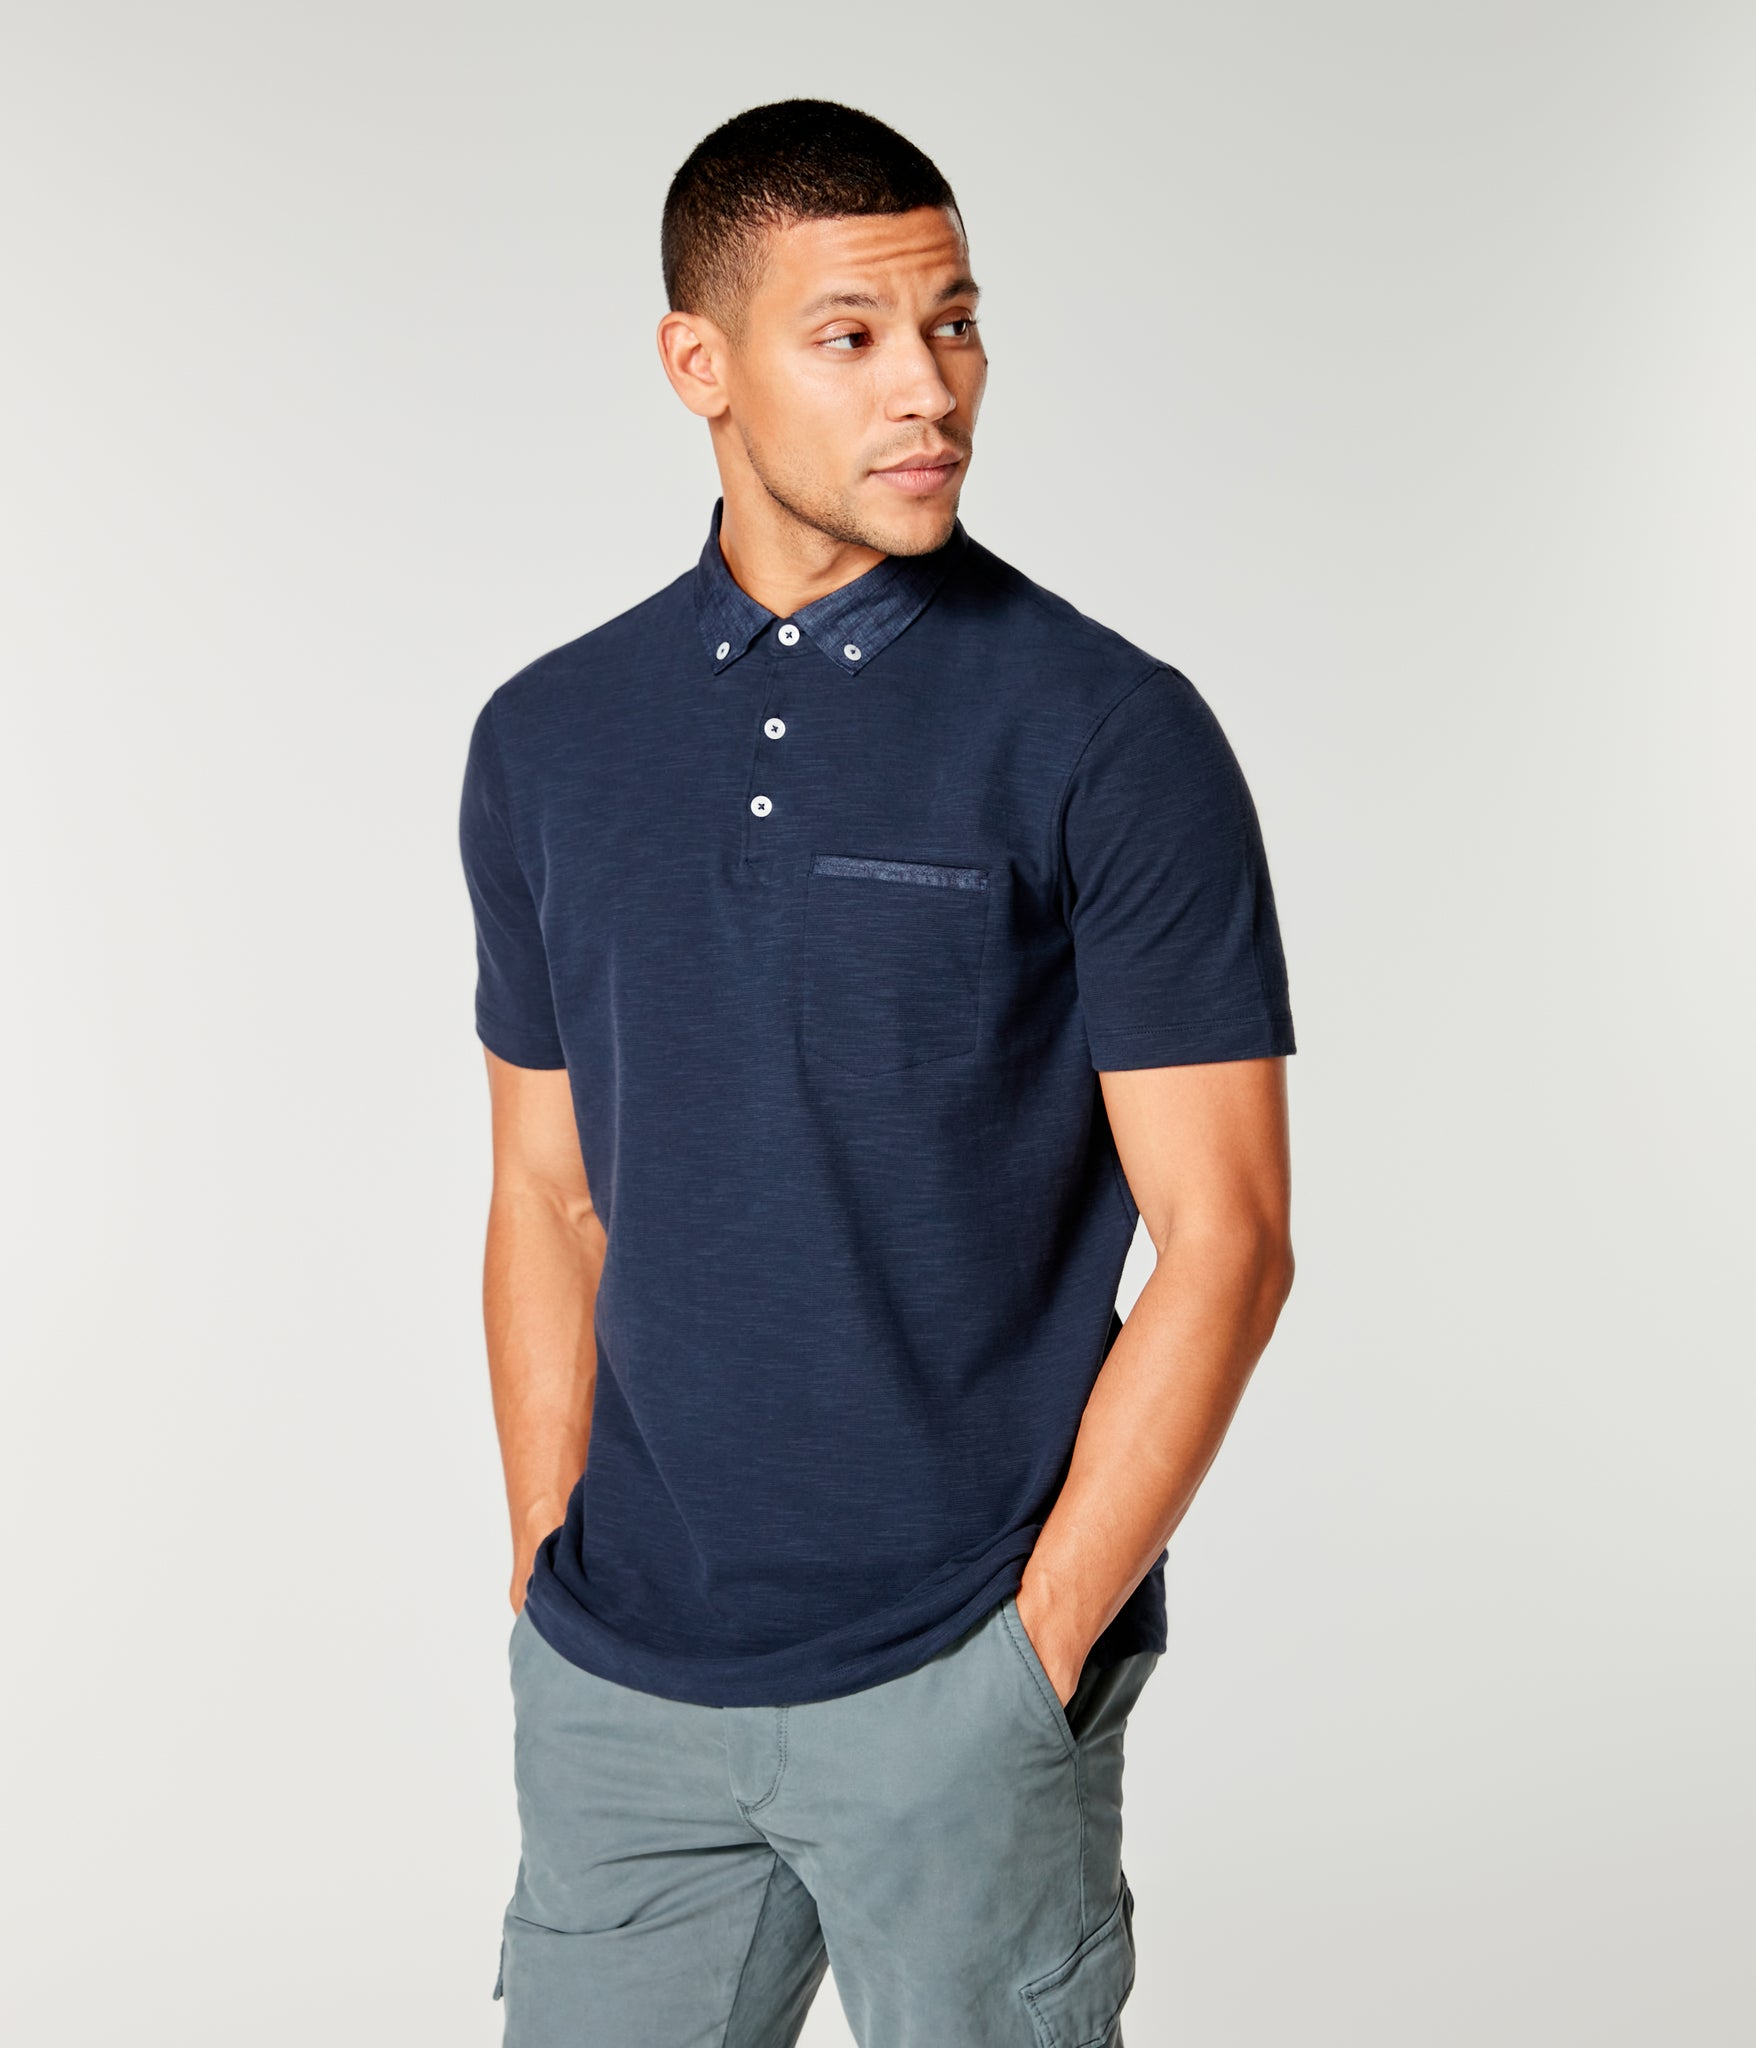 Soft Slub Jersey Polo - Sky Captain